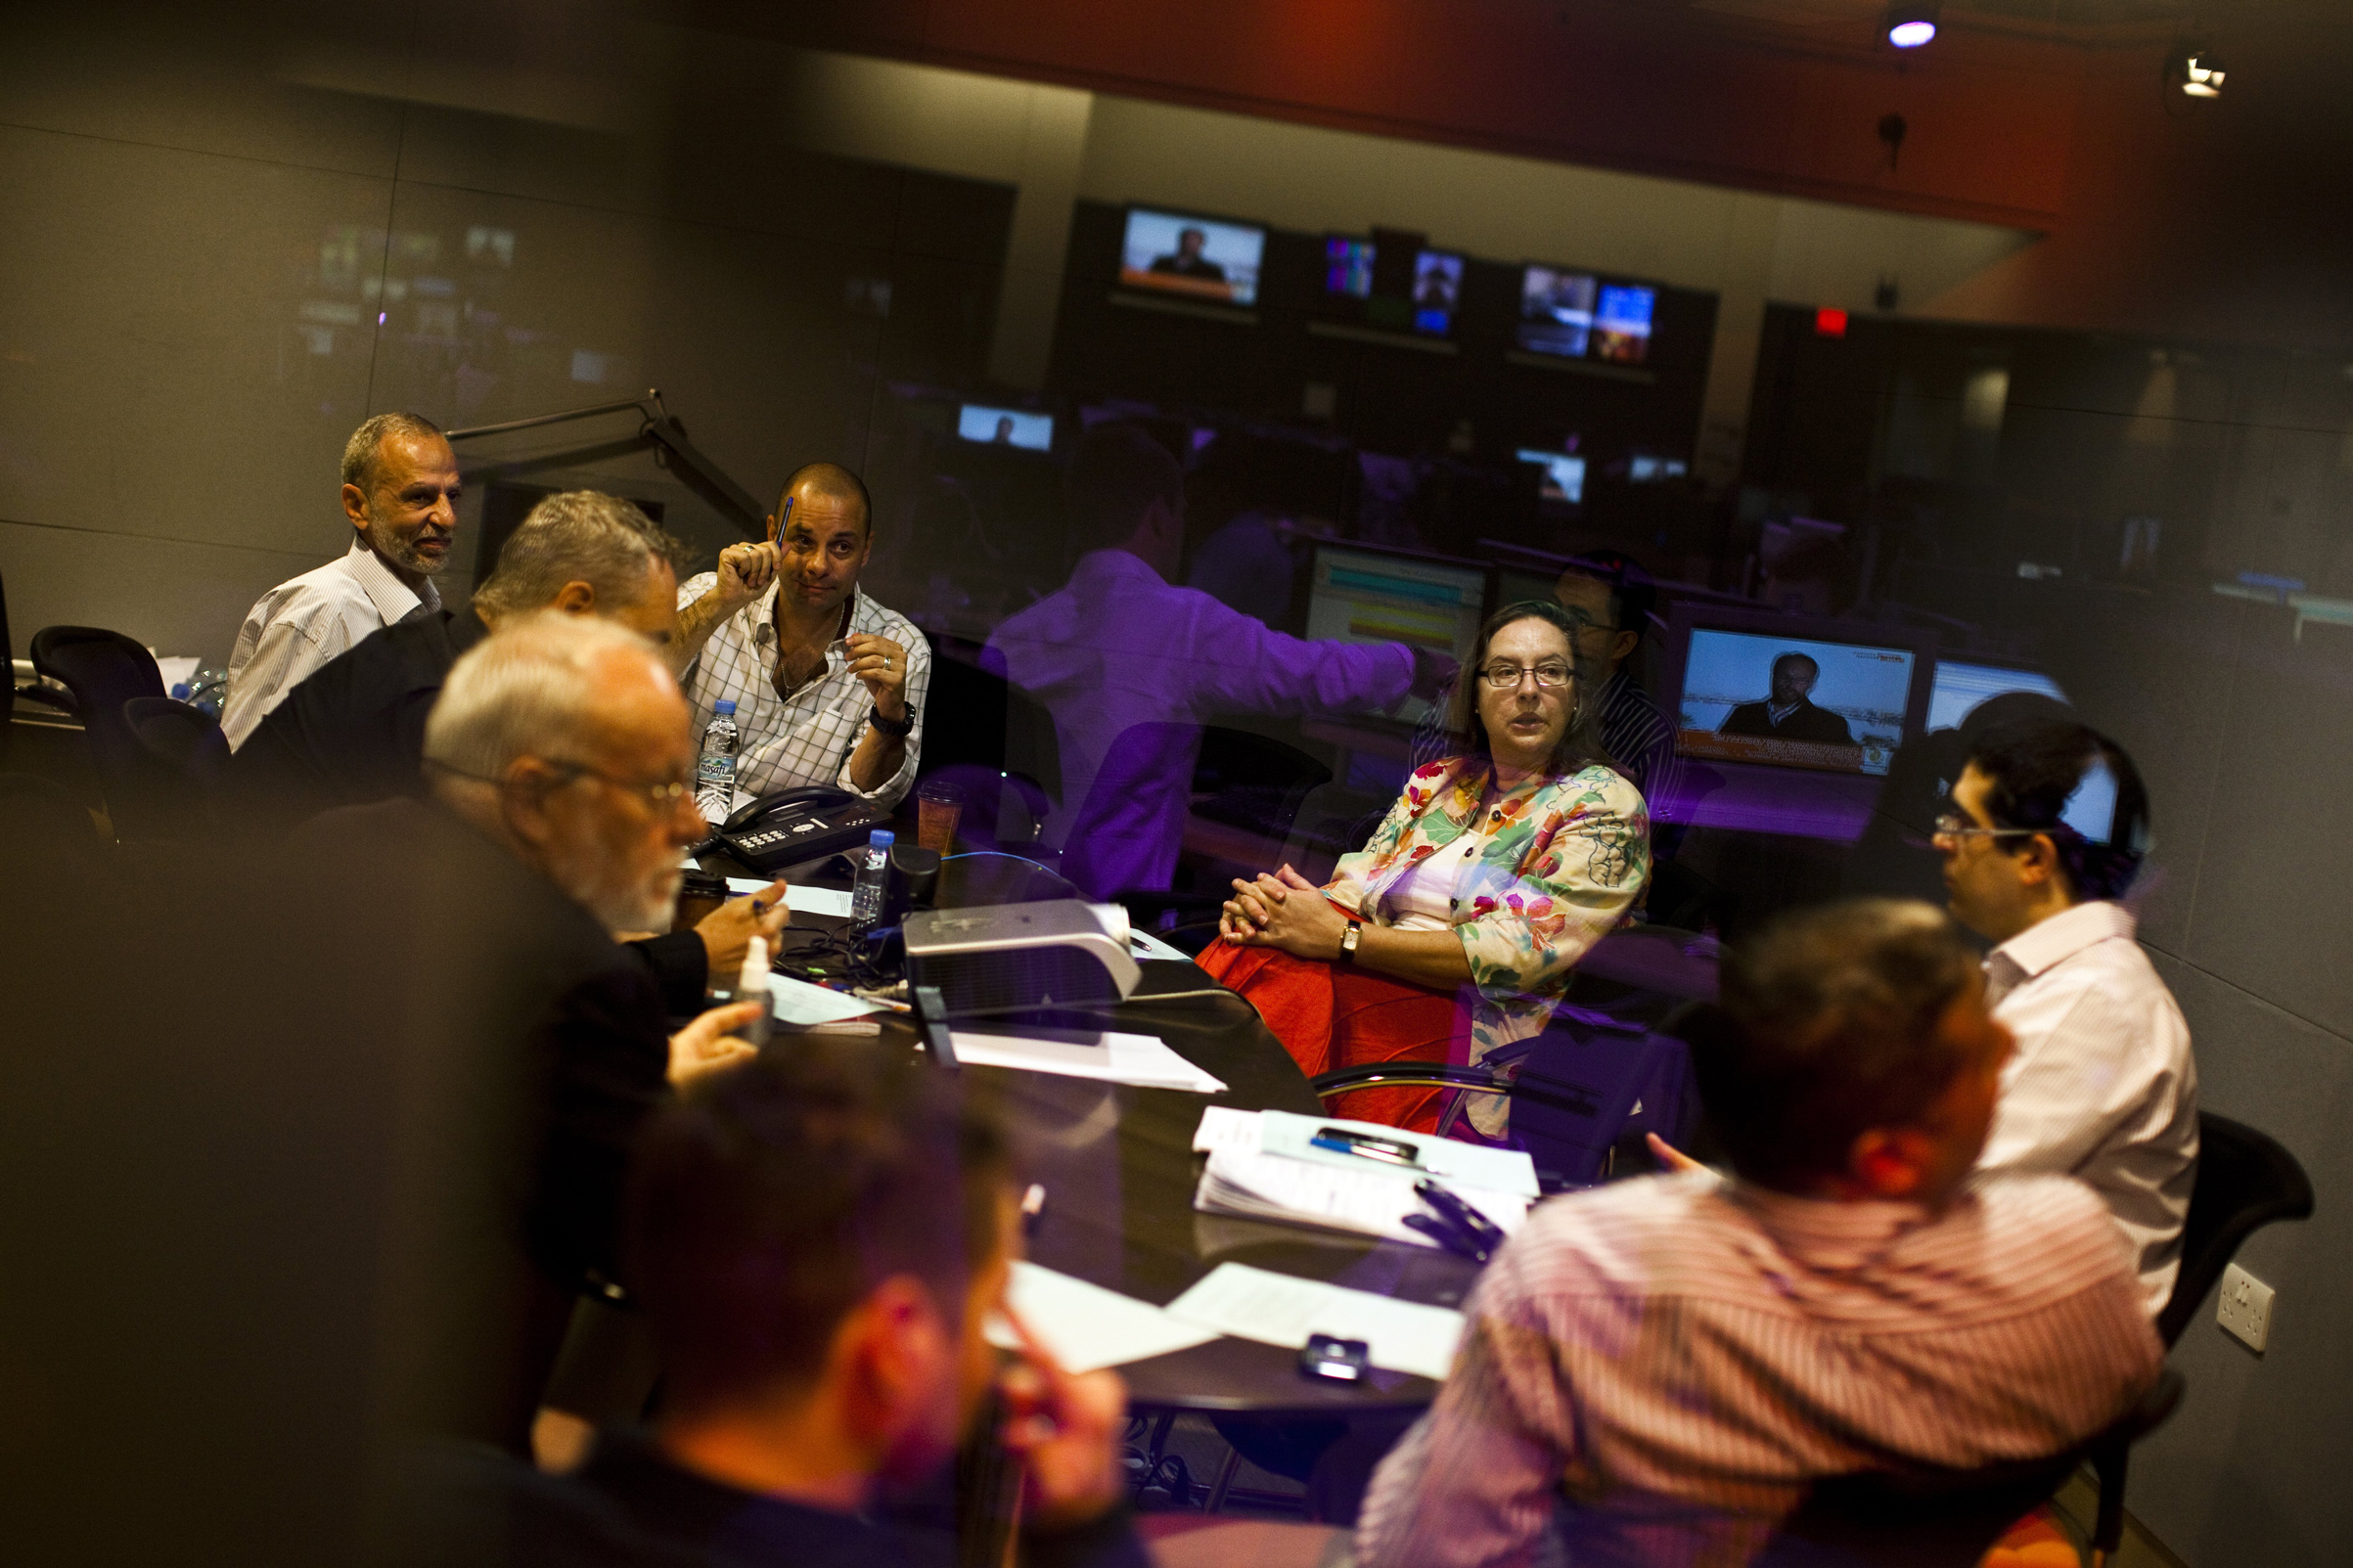 Heather Allan, then a News Manager at Al Jazeera English, takes part in a morning editorial meeting in Doha on March 23, 2011.